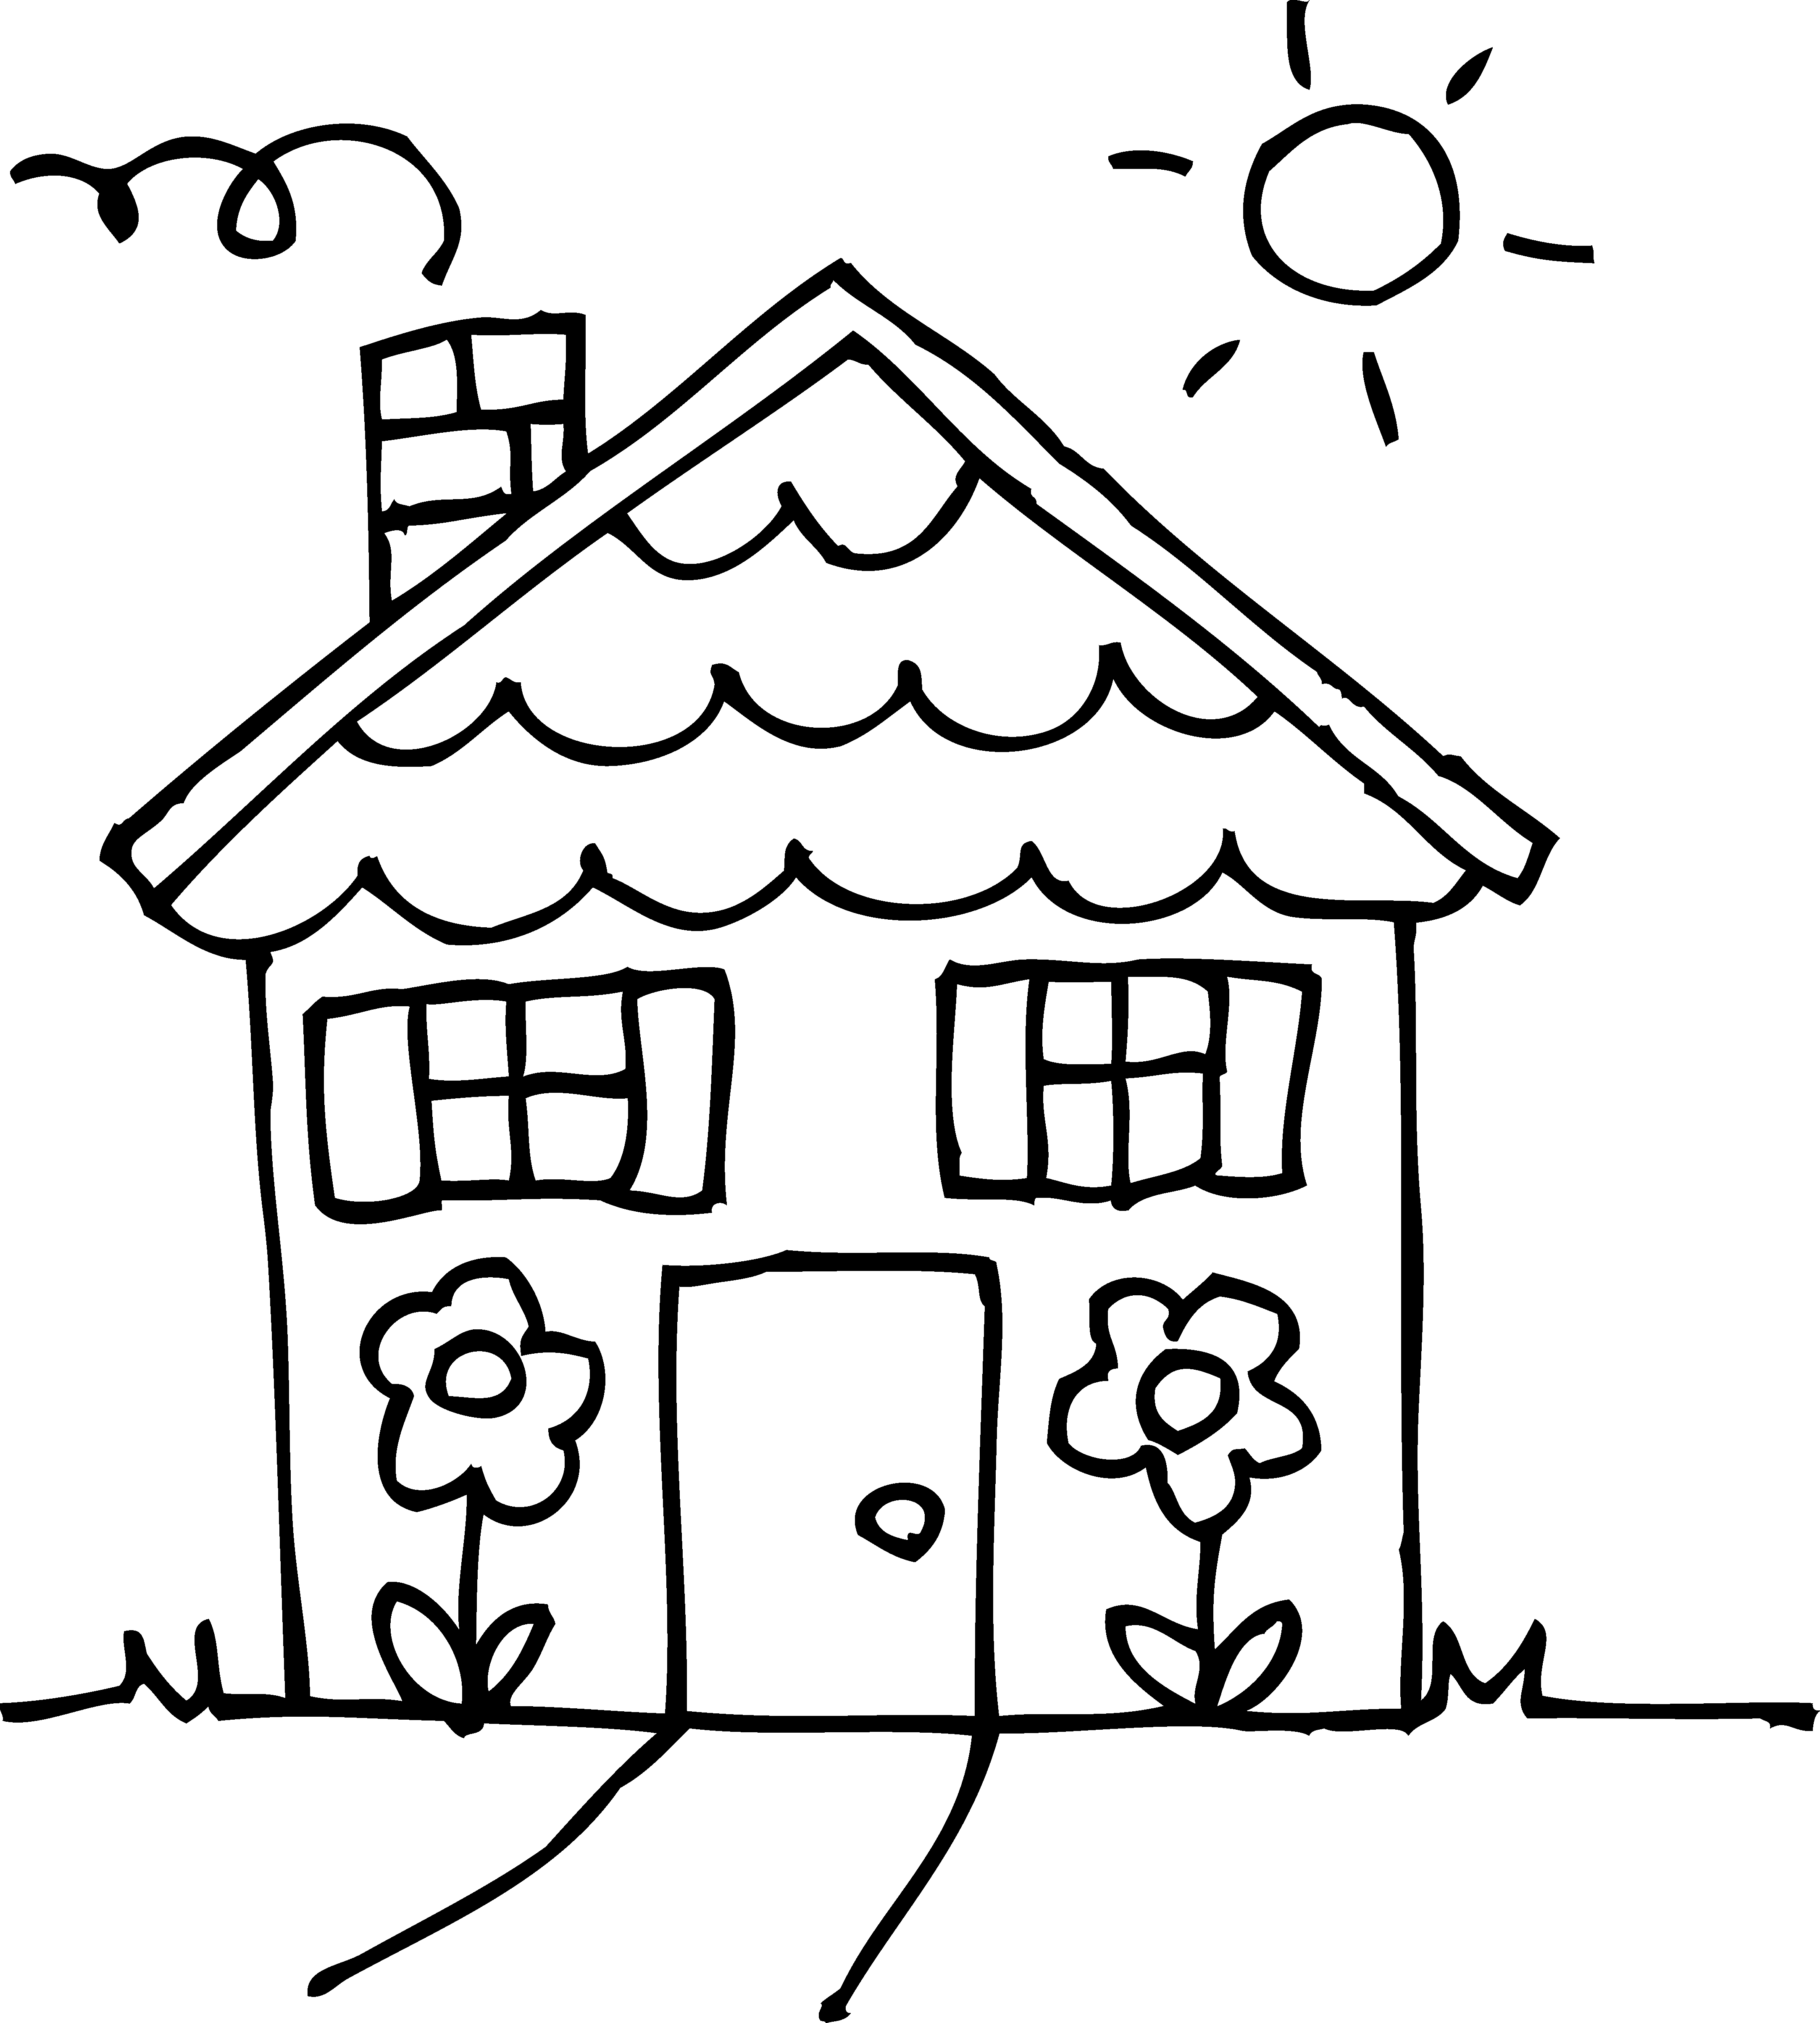 coloring picture house sunny day house coloring page free clip art house picture coloring